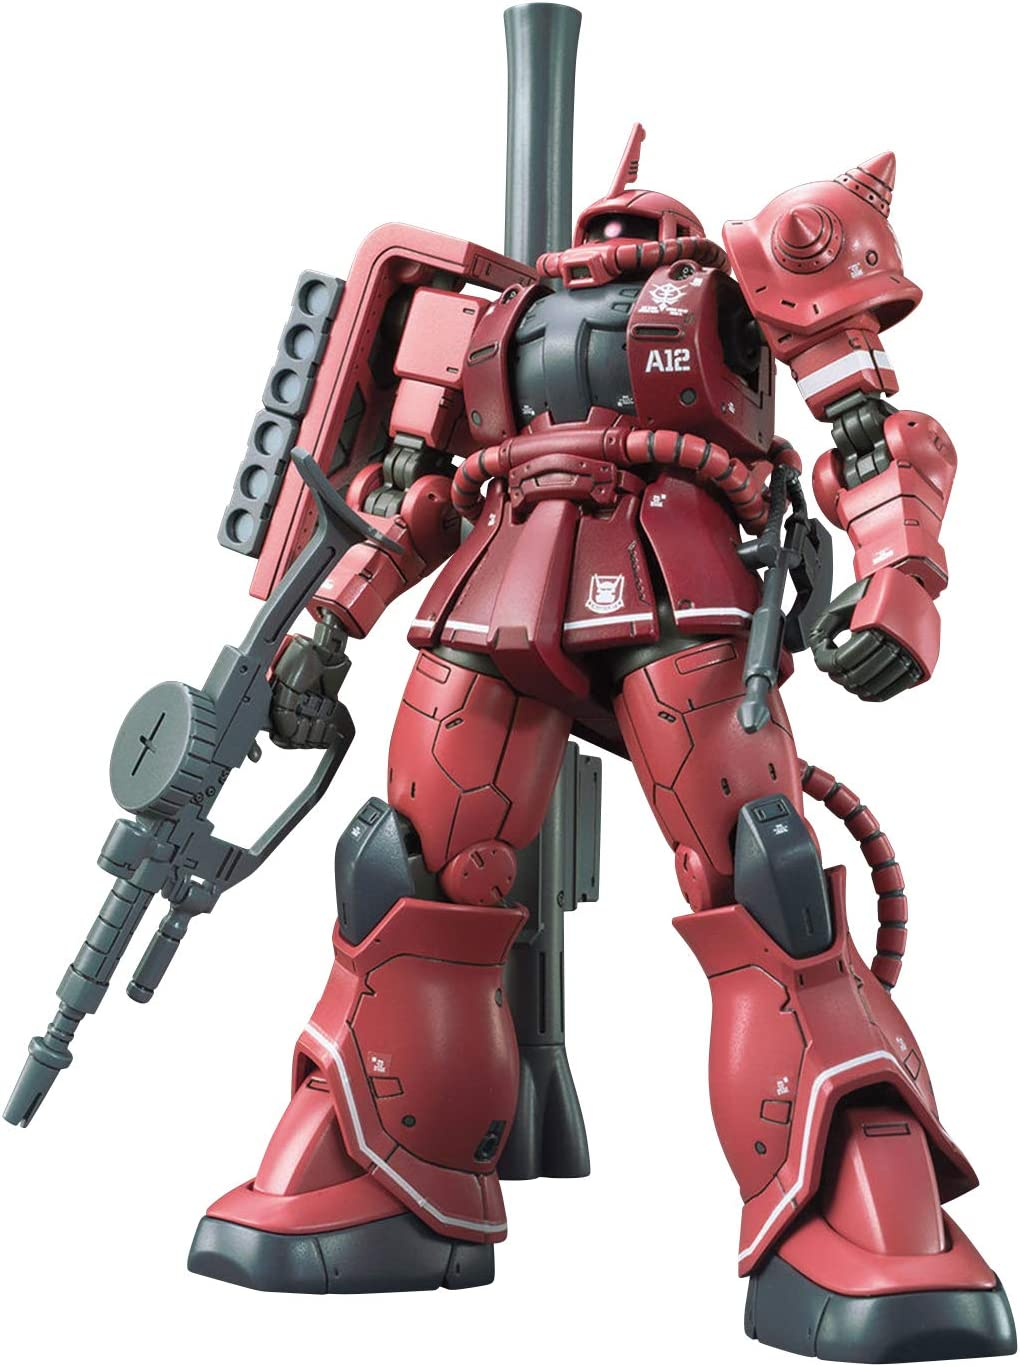 Gundam The Origin MS-06S Zaku II Char Red Comet Ver, Bandai HG TheOrigin 1/144